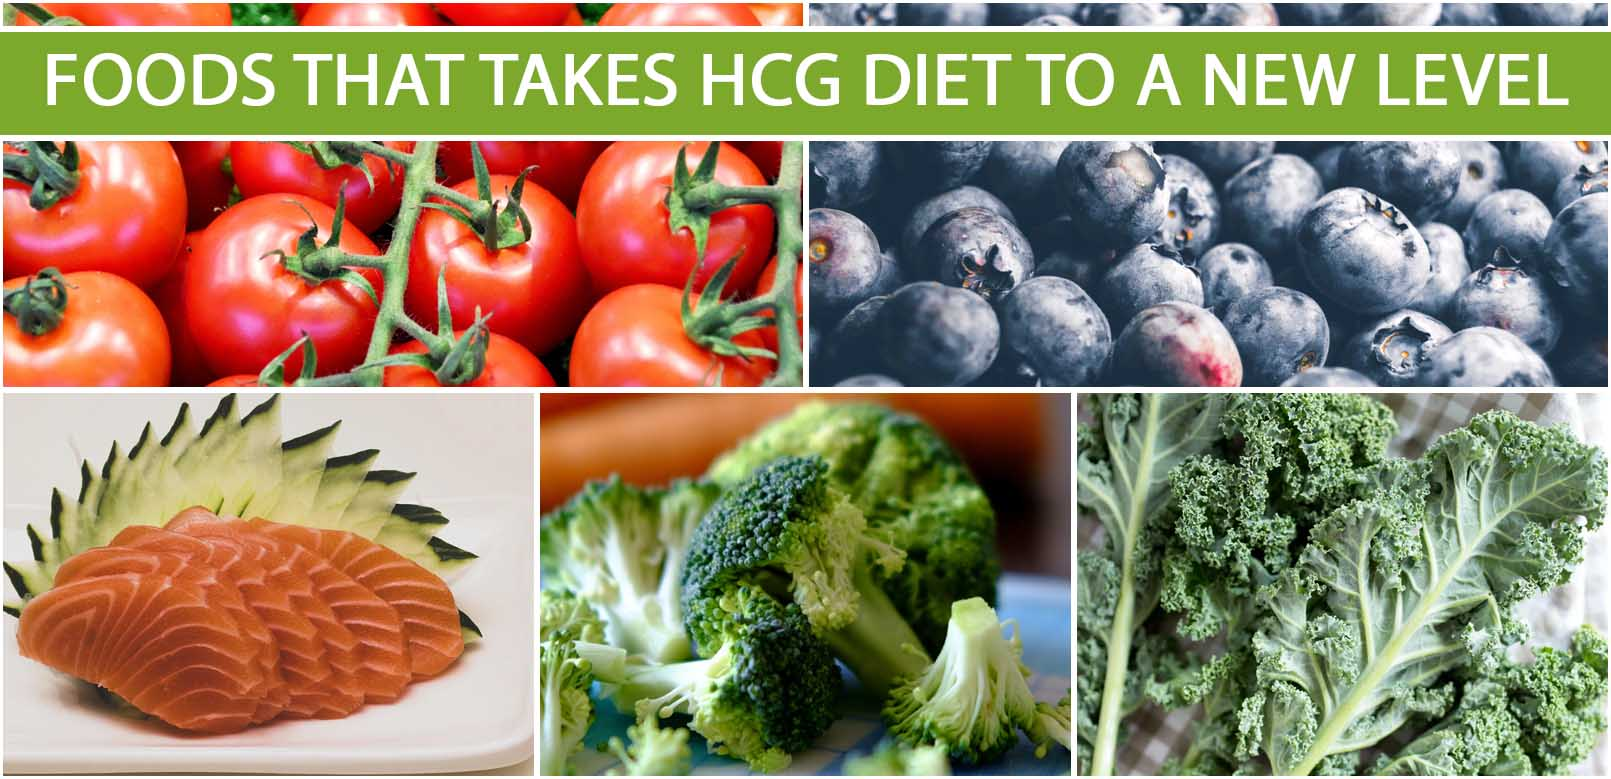 FOODS THAT TAKES HCG DIET TO A NEW LEVEL